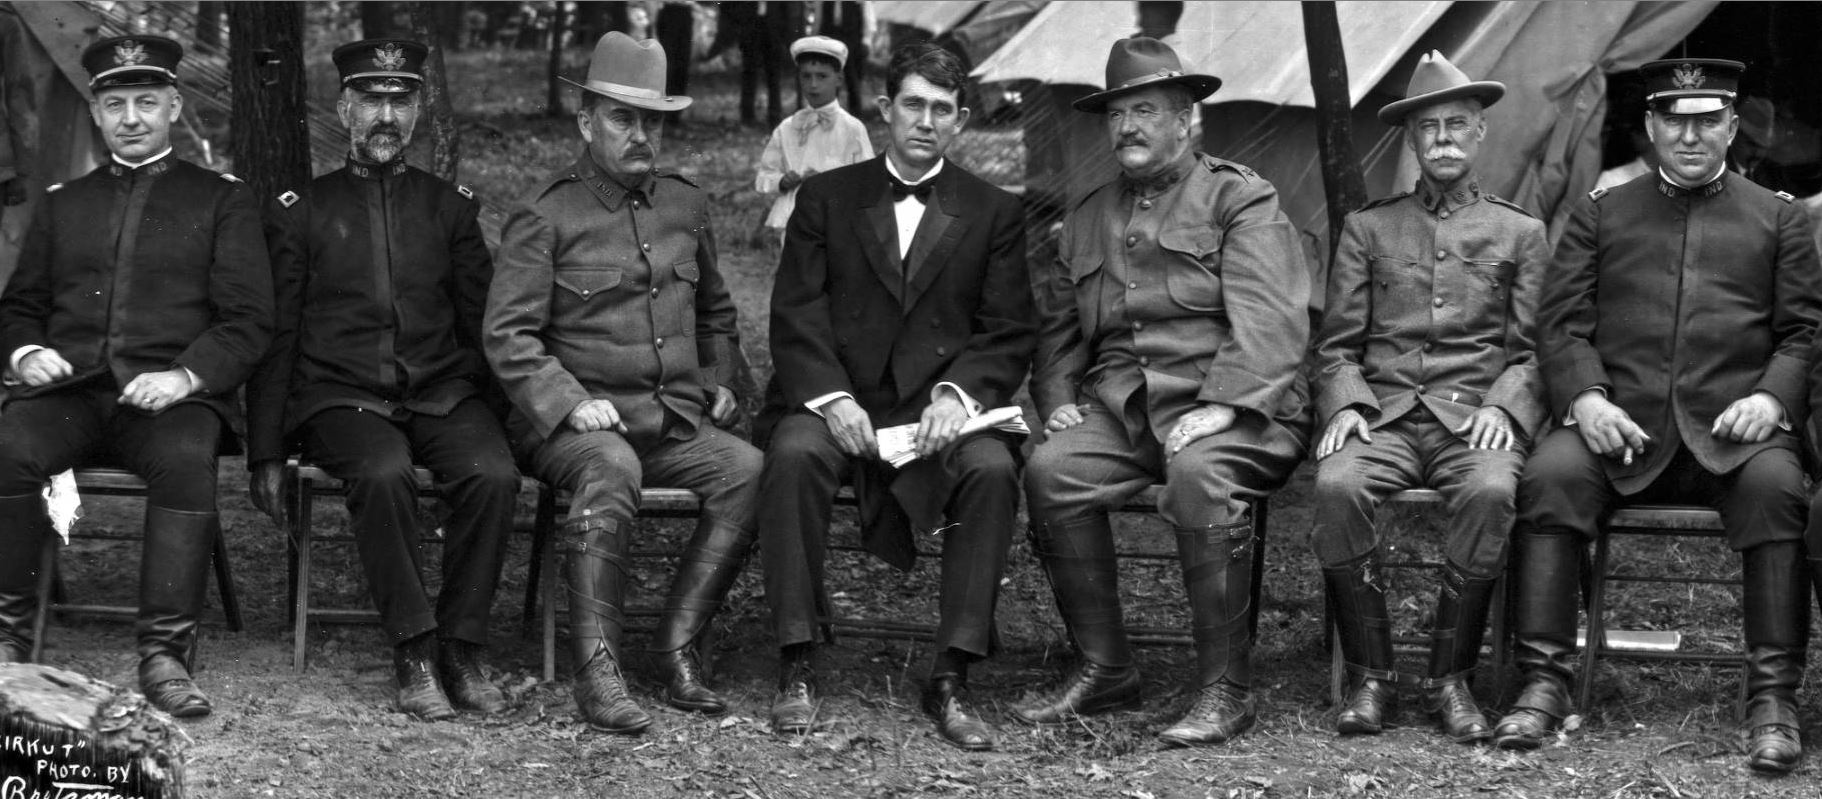 Governor J. Frank Hanly and military officers at Fort Benjamin Harrison Camp of Instruction, 1906. Courtesy of Indiana Memory.